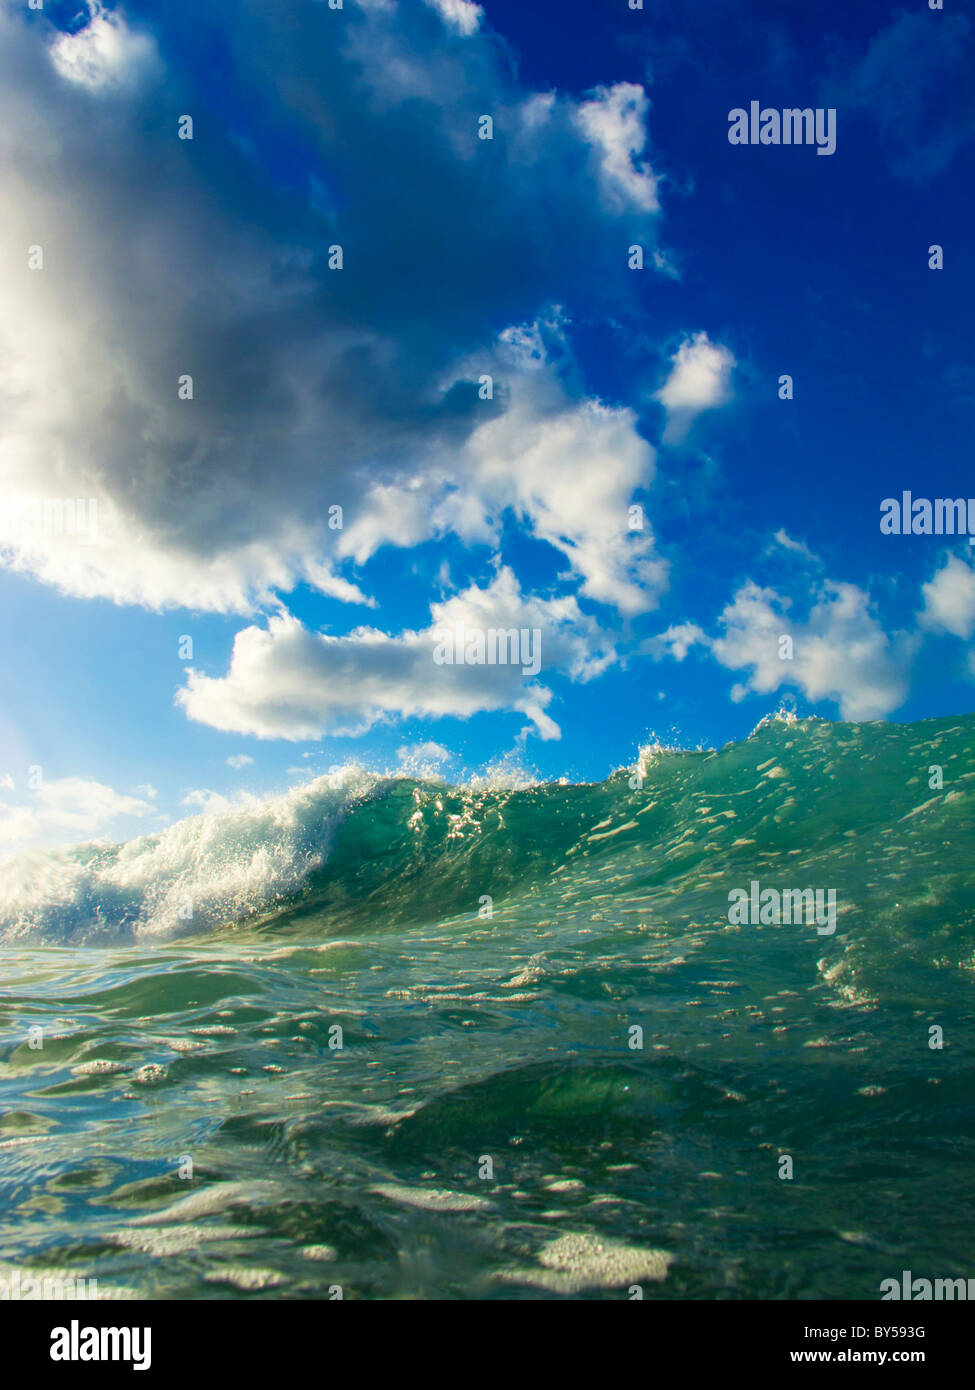 View of the sea with green water and blue, cloudy skies - Stock Image